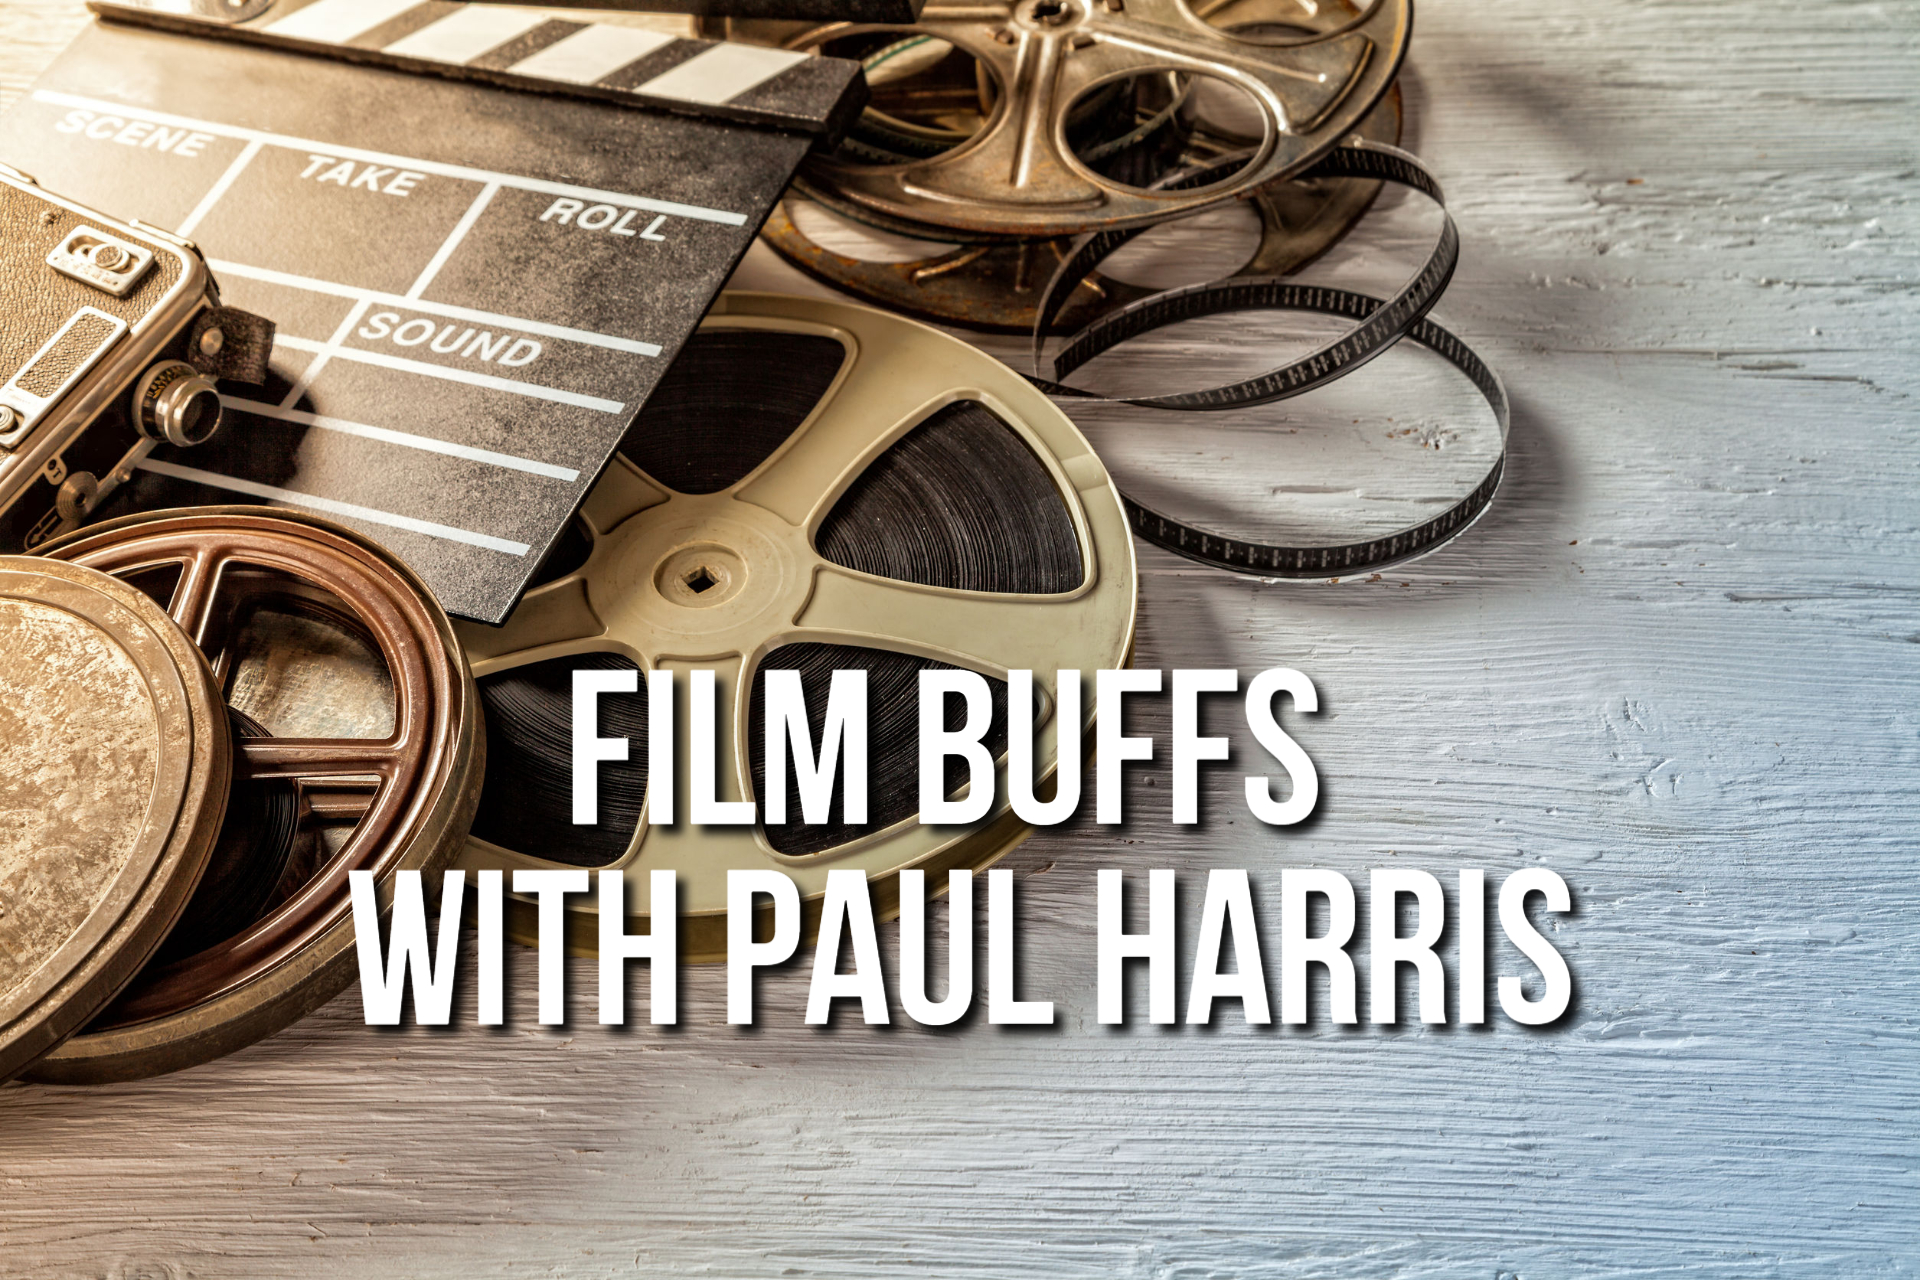 Film Buffs with Paul Harris, October 3